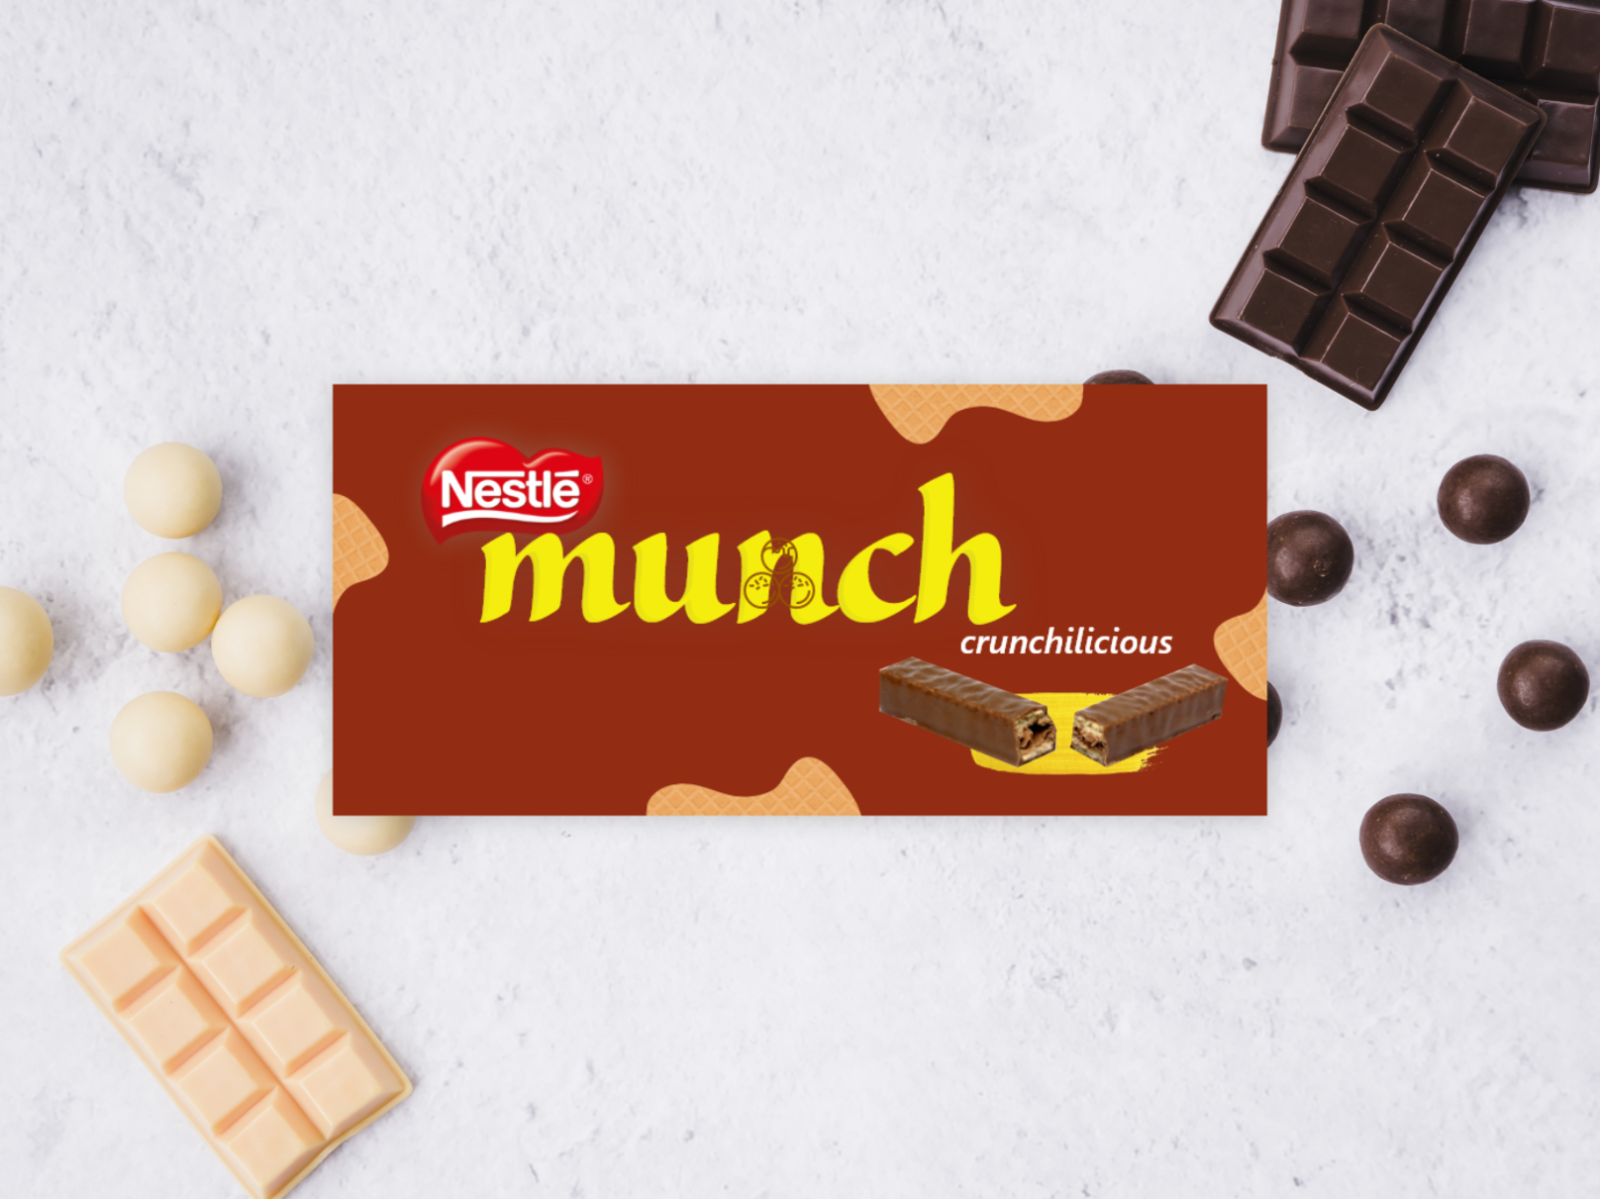 Chocolate Wrapper Redesign Munch By Jenitta Johny On Dribbble